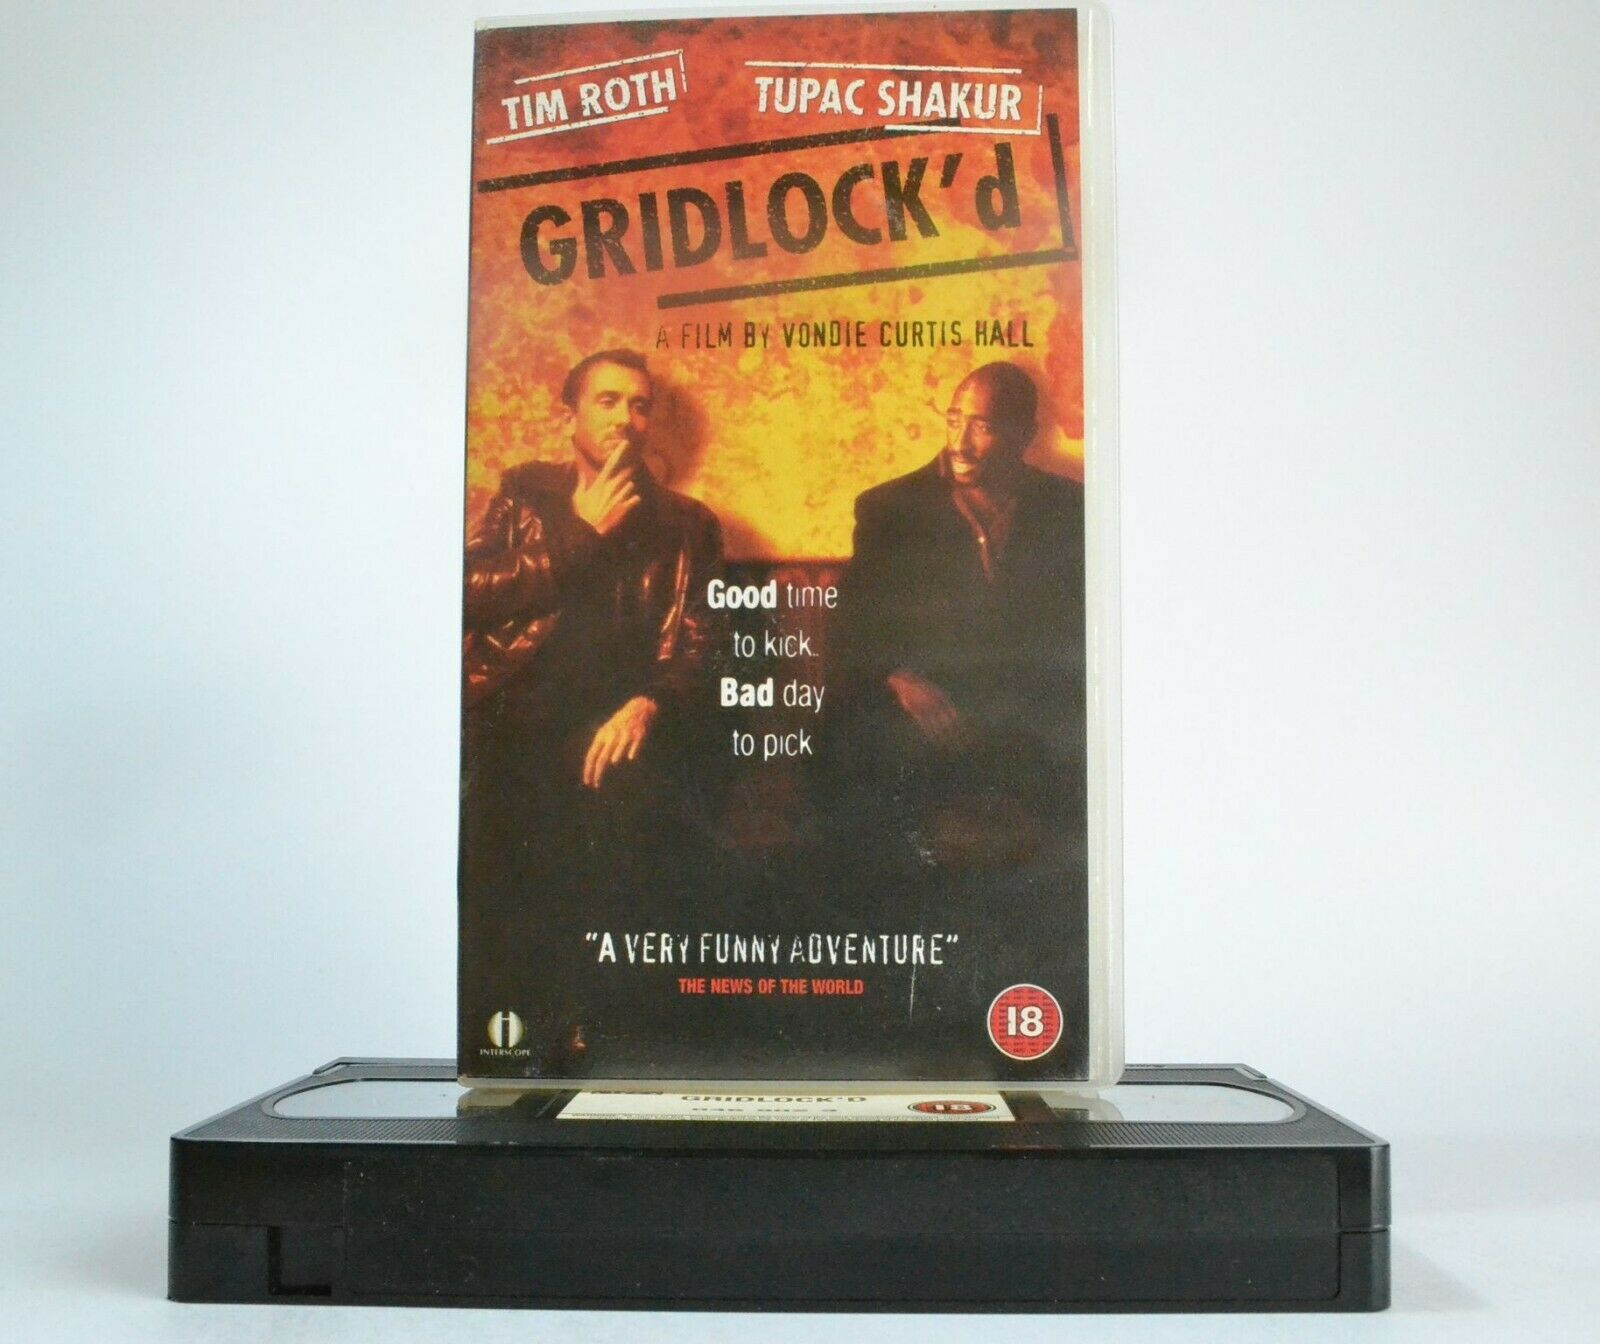 Addicts, Adventures, Black, Comedy, Gridlock'd, Heroin, PAL, Shakur, Tupac, VHS